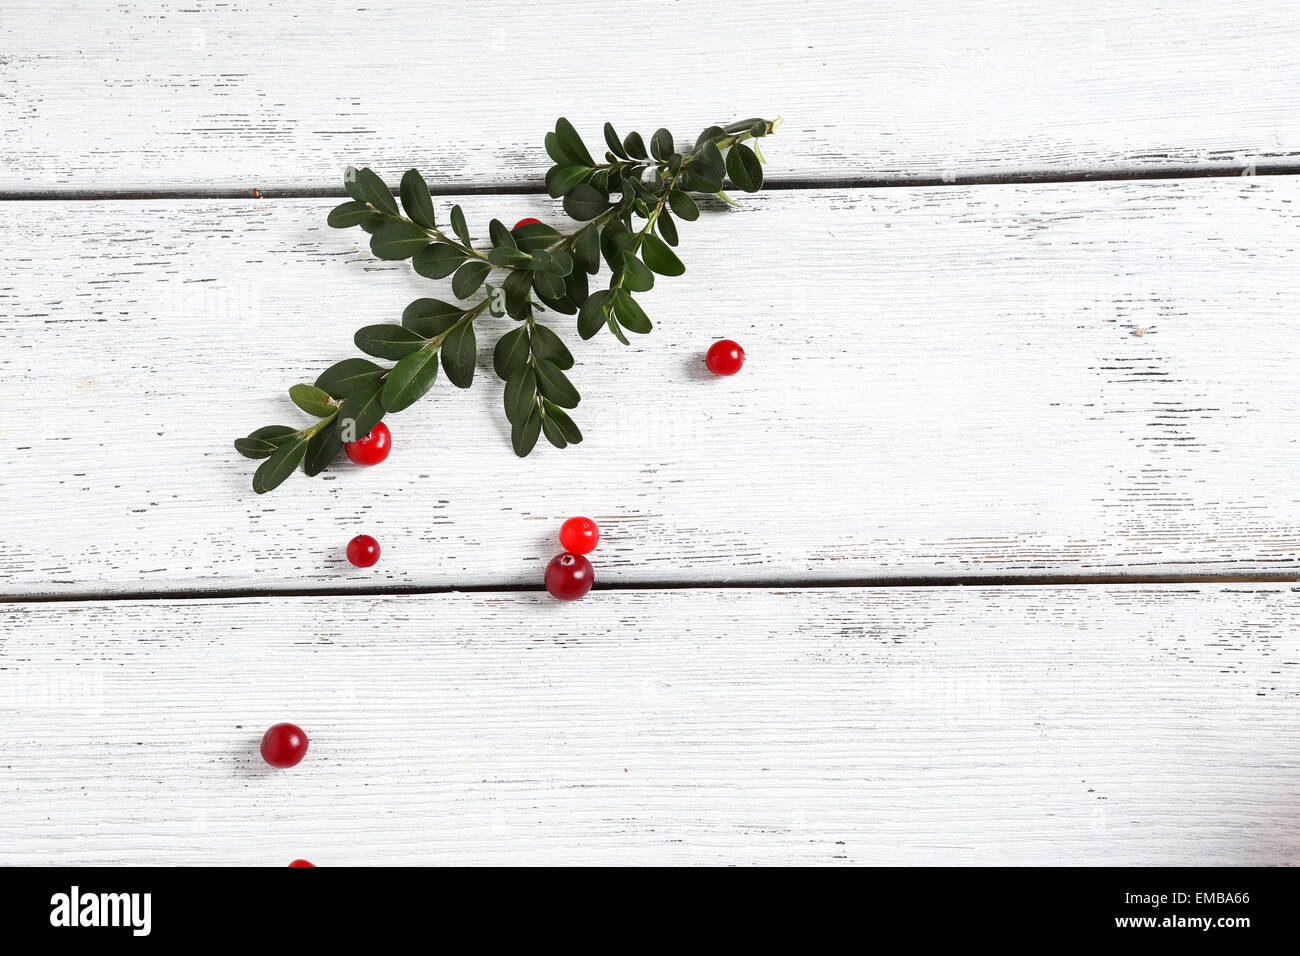 Twig with cranberries on the boards, food - Stock Image